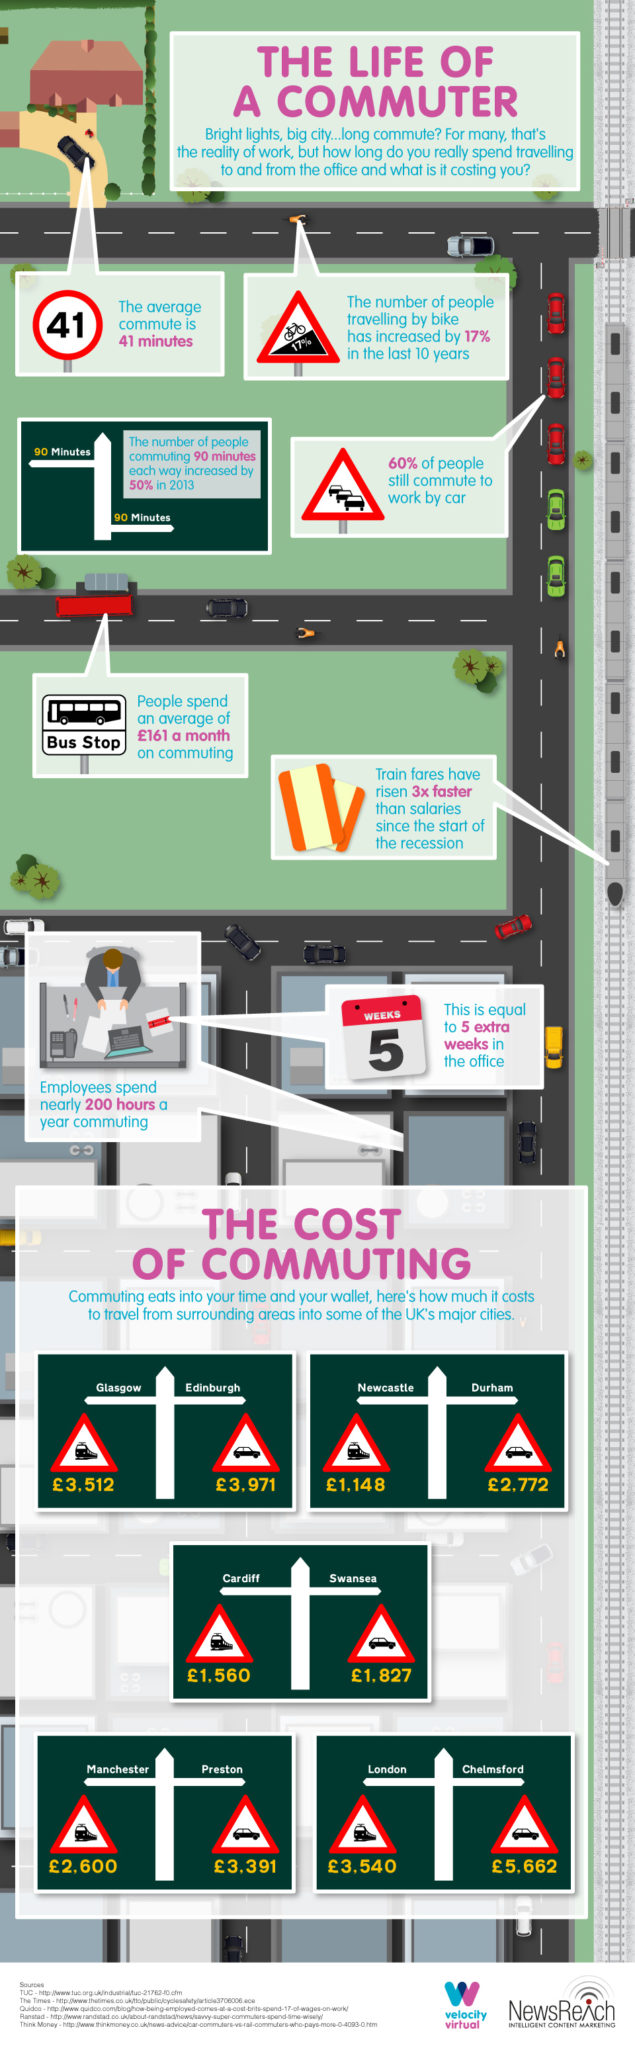 Business-Environment---Life-of-a-Commuter_v5 (3)